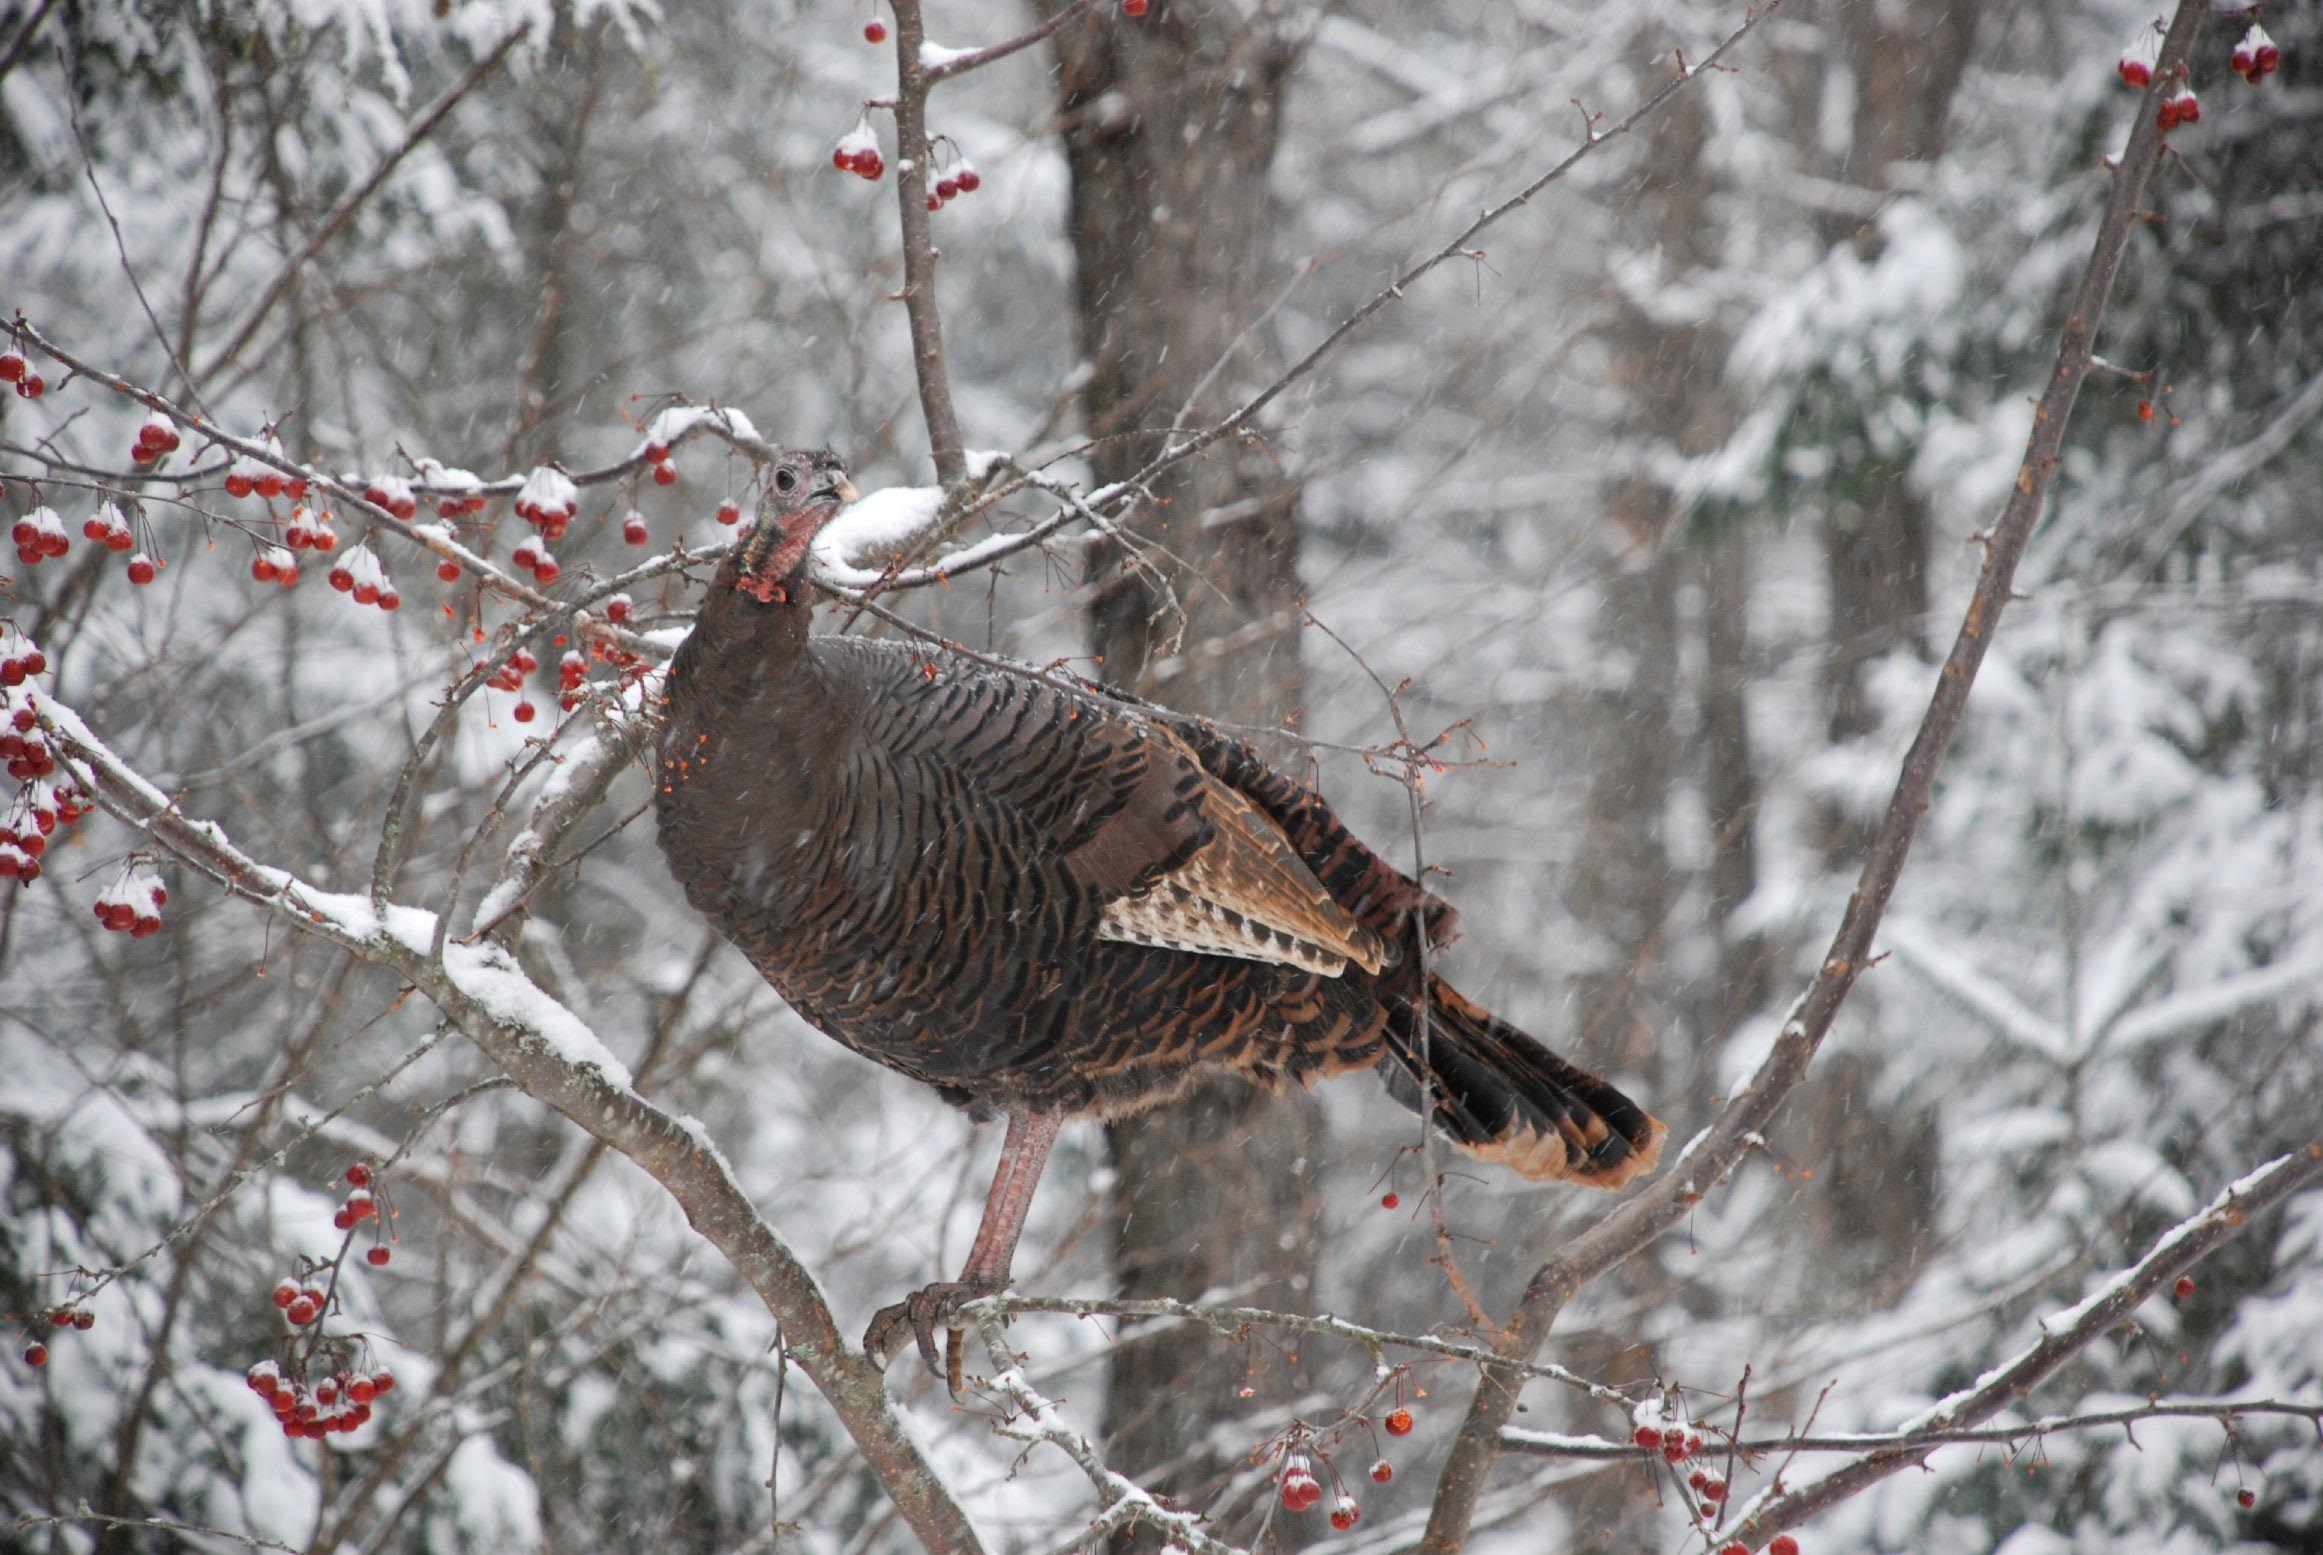 White-tailed deer and wild turkeys try to conserve body heat when it's cold, feeding on high calorie foods, moving as little as possible, and expending energy only during the warmest parts of the day (Photo Provided)